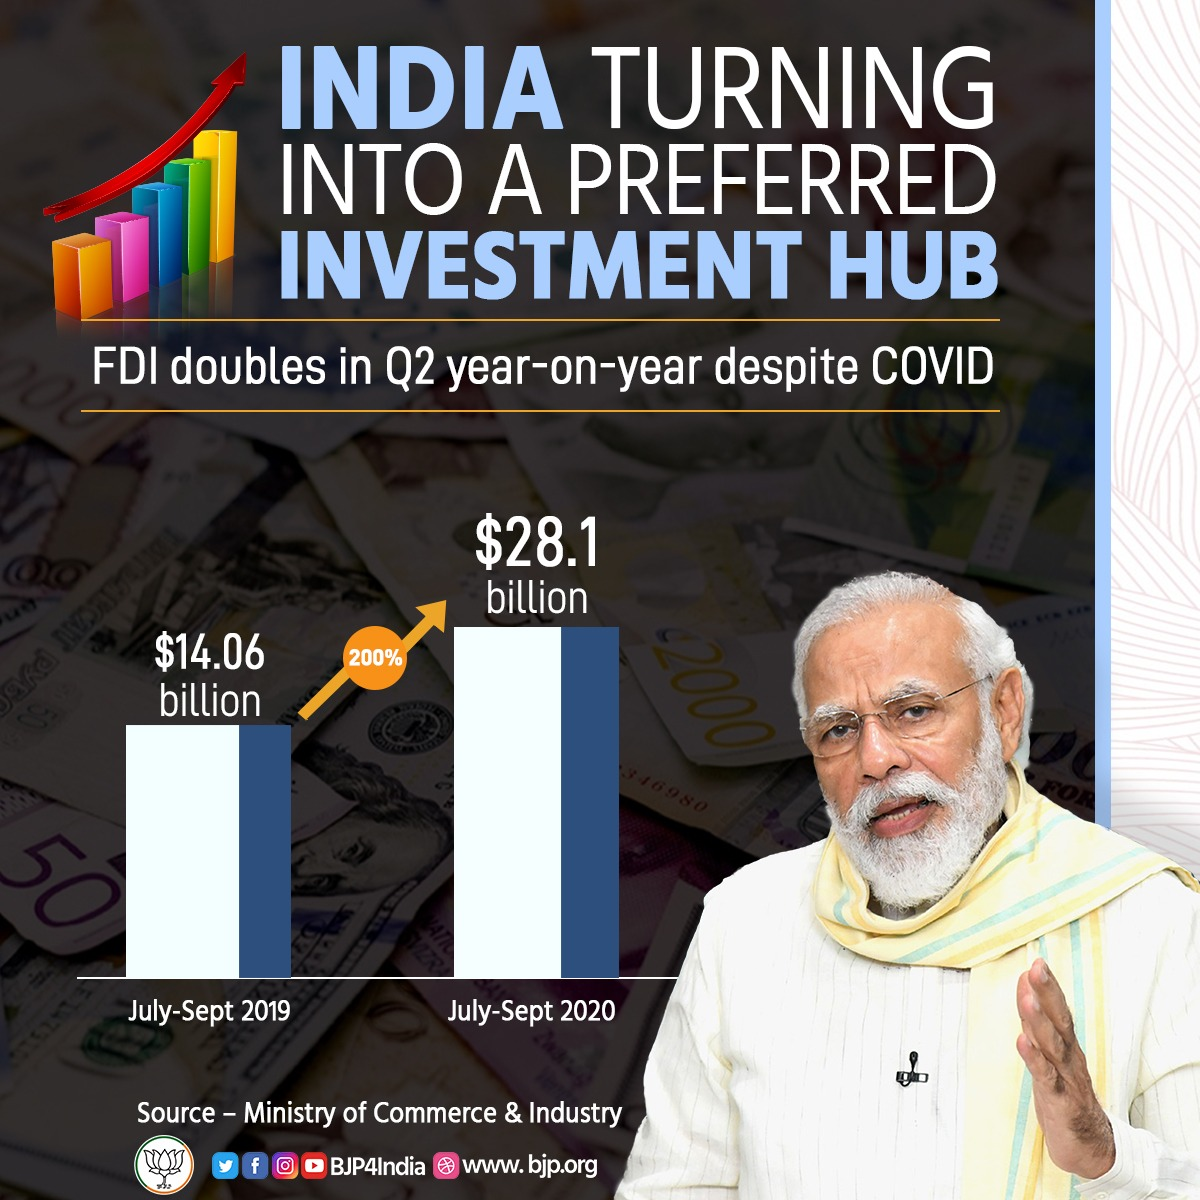 India turning into a preferred investment hub under the leadership of PM Shri @narendramodi.  FDI has doubled in Q2 year-on-year despite COVID-19.  #EconomyRebounds